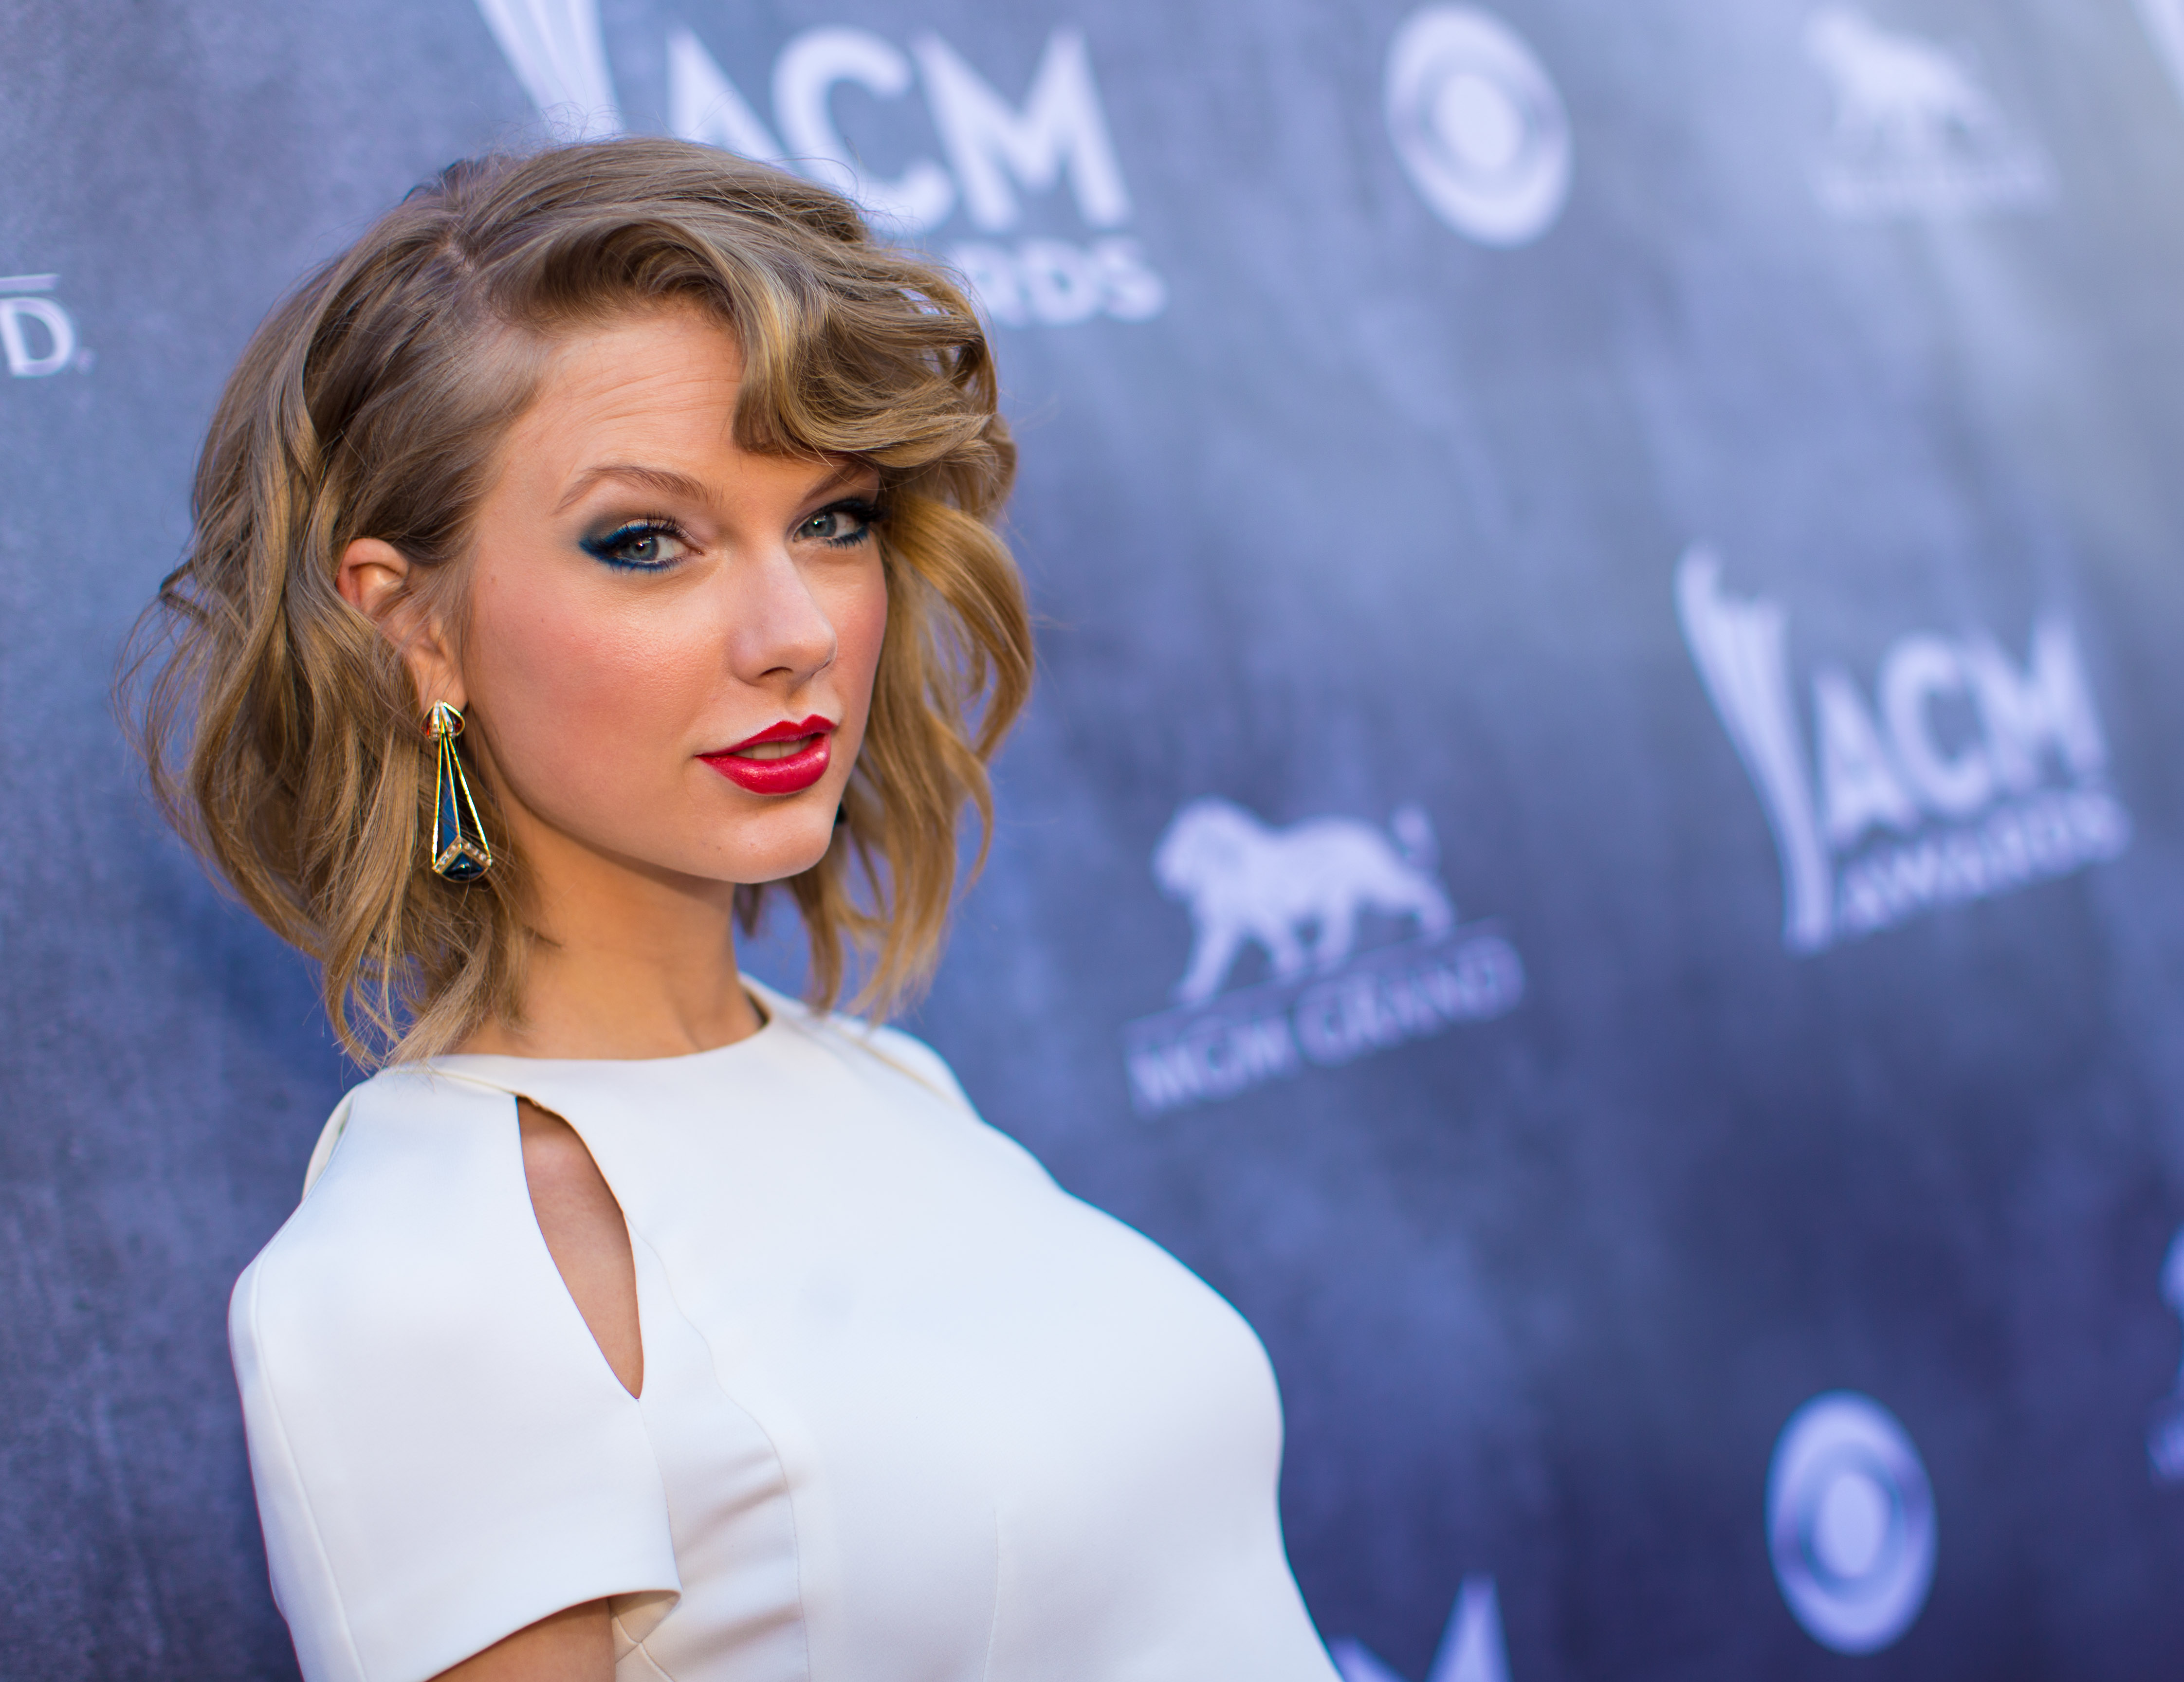 LAS VEGAS, NV - APRIL 06:  Recording artist Taylor Swift attends the 49th Annual Academy Of Country Music Awards at the MGM Grand Garden Arena on April 6, 2014 in Las Vegas, Nevada.  (Photo by Christopher Polk/ACMA2014/Getty Images for ACM)